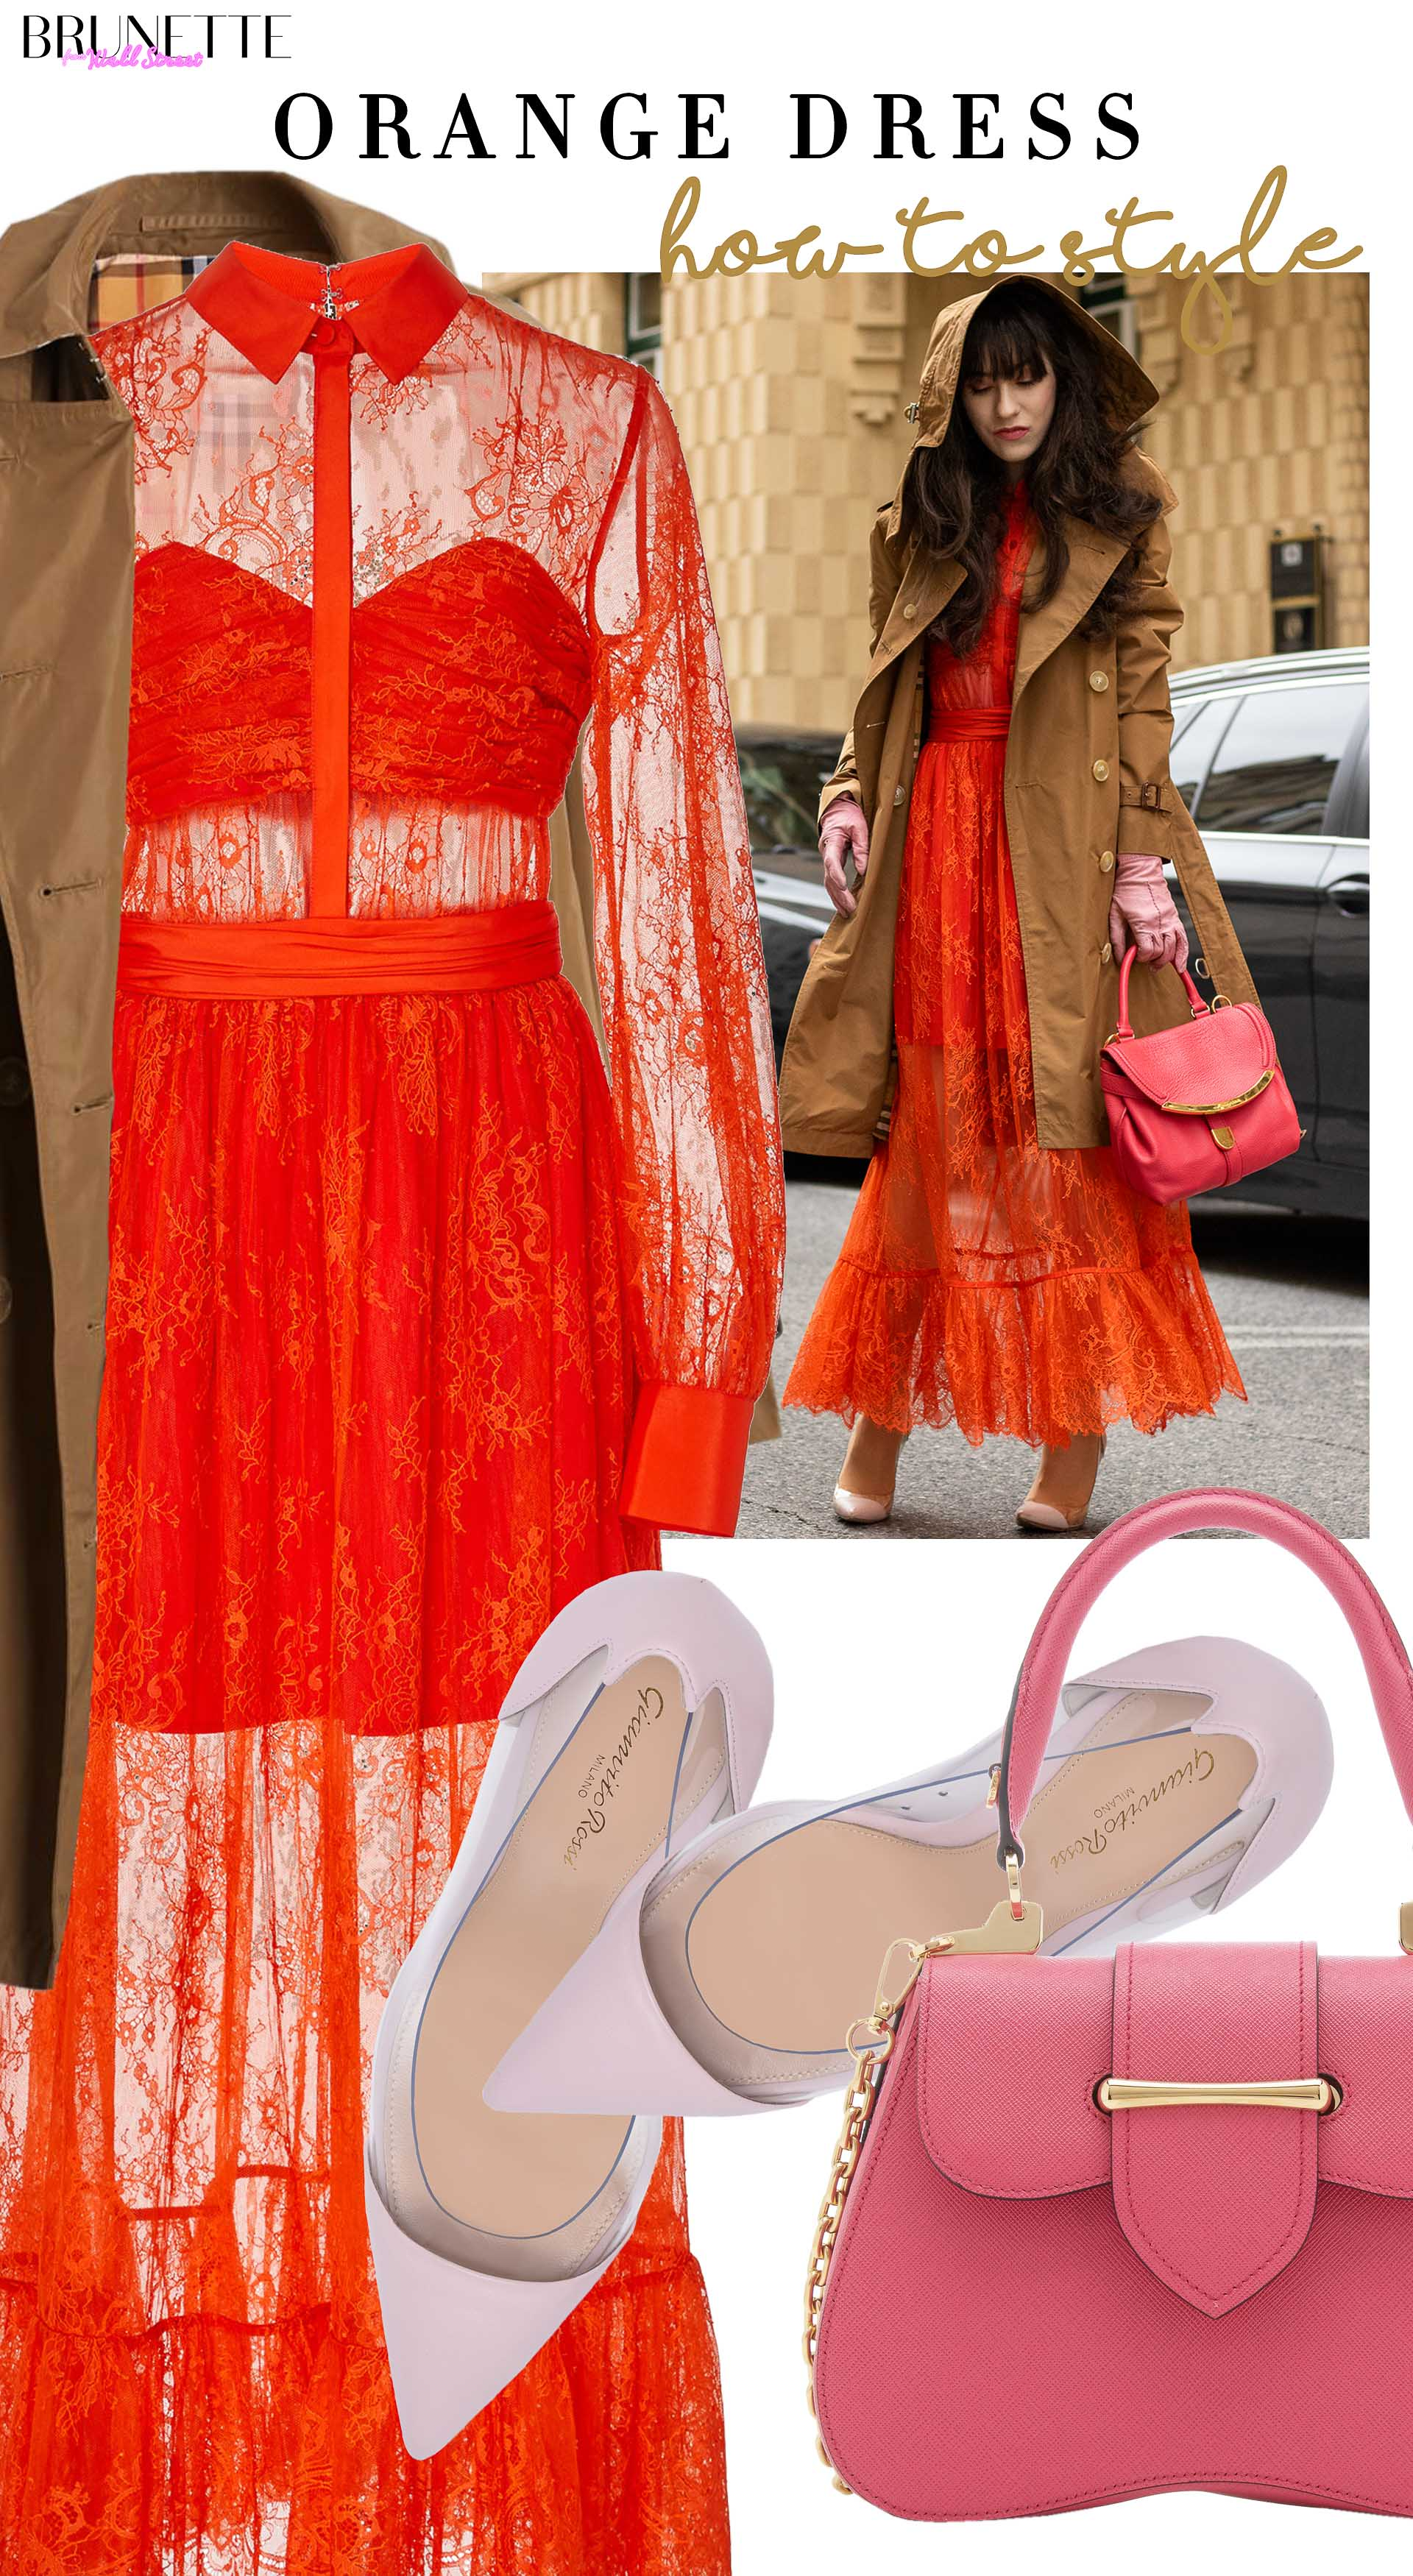 Brunette from Wall Street how to style Self Portrait orange dress Burberry trench coat Gianvito Rossi pumps Prada bag for date in rain